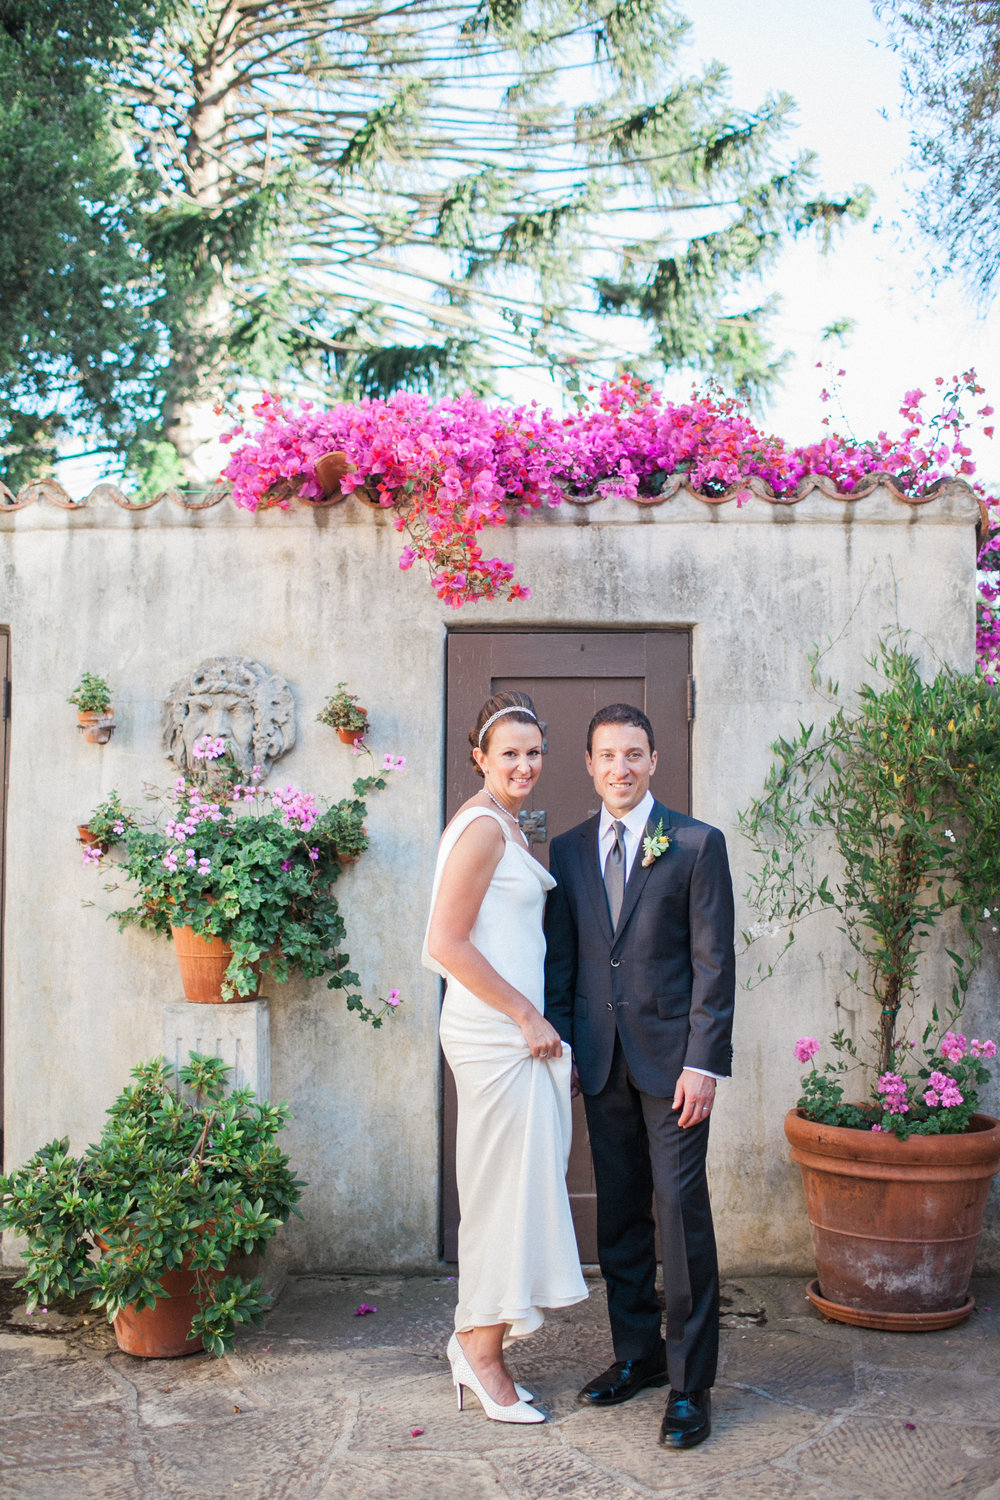 magnoliaeventdesign.com | A Ravenscroft Historic Estate Wedding Photographed by Ashleigh Taylor | Montecito Wedding Planner and Designer | Magnolia Event Design